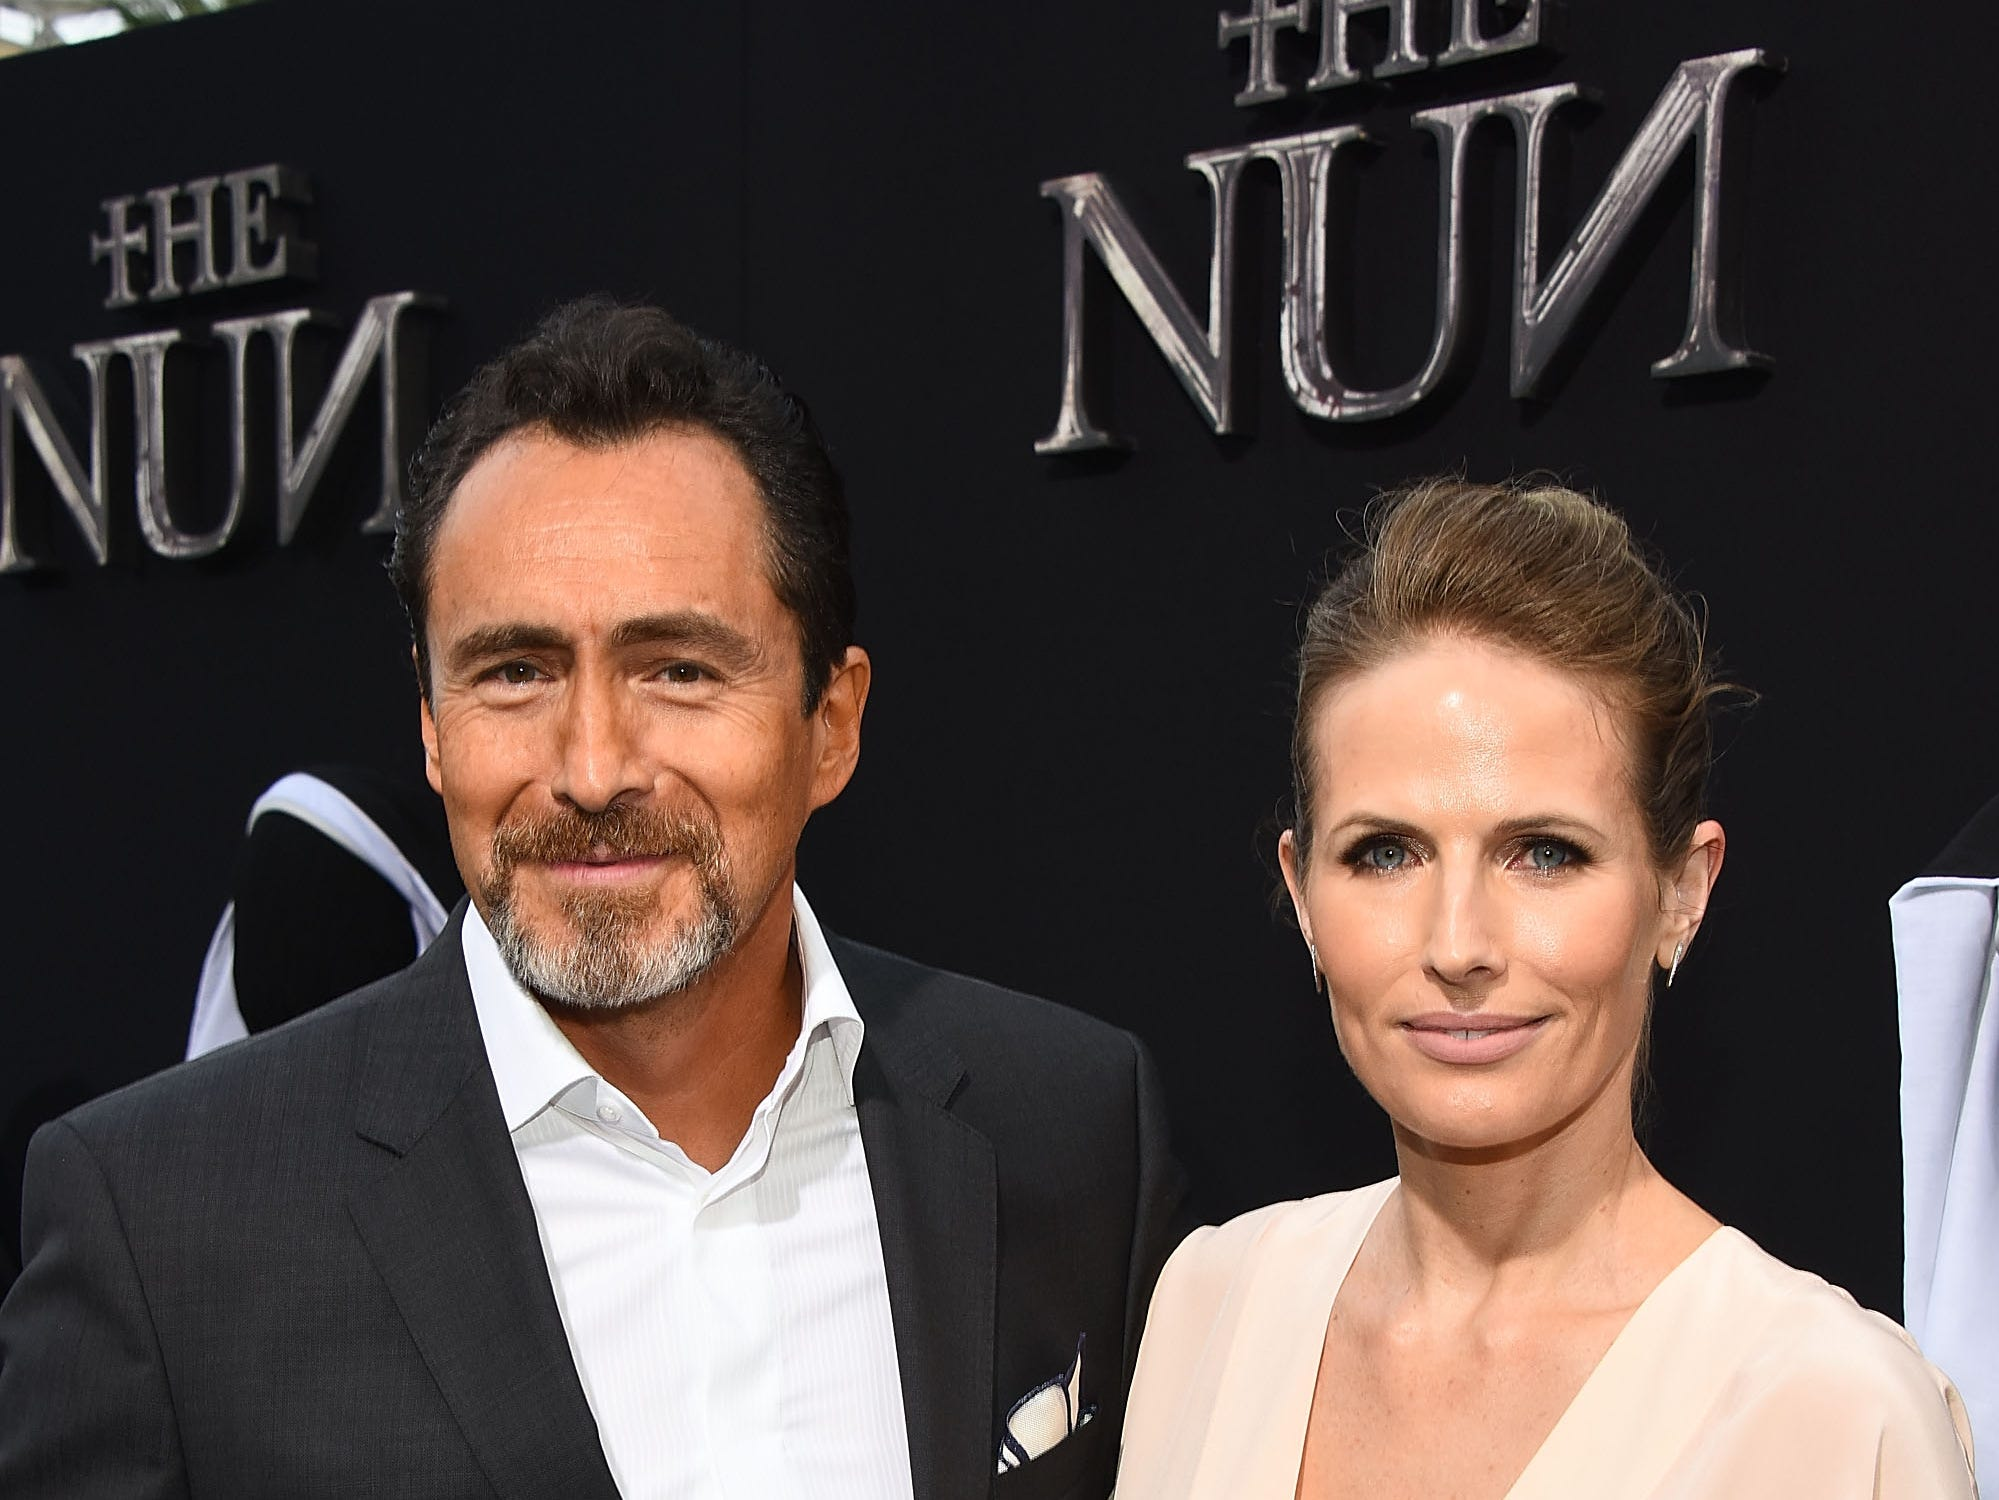 """Demian Bichir and his wife, Stefanie Sherk, attend the premiere of  his film """"The Nun"""" on Sept. 4, 2018, in Hollywood."""